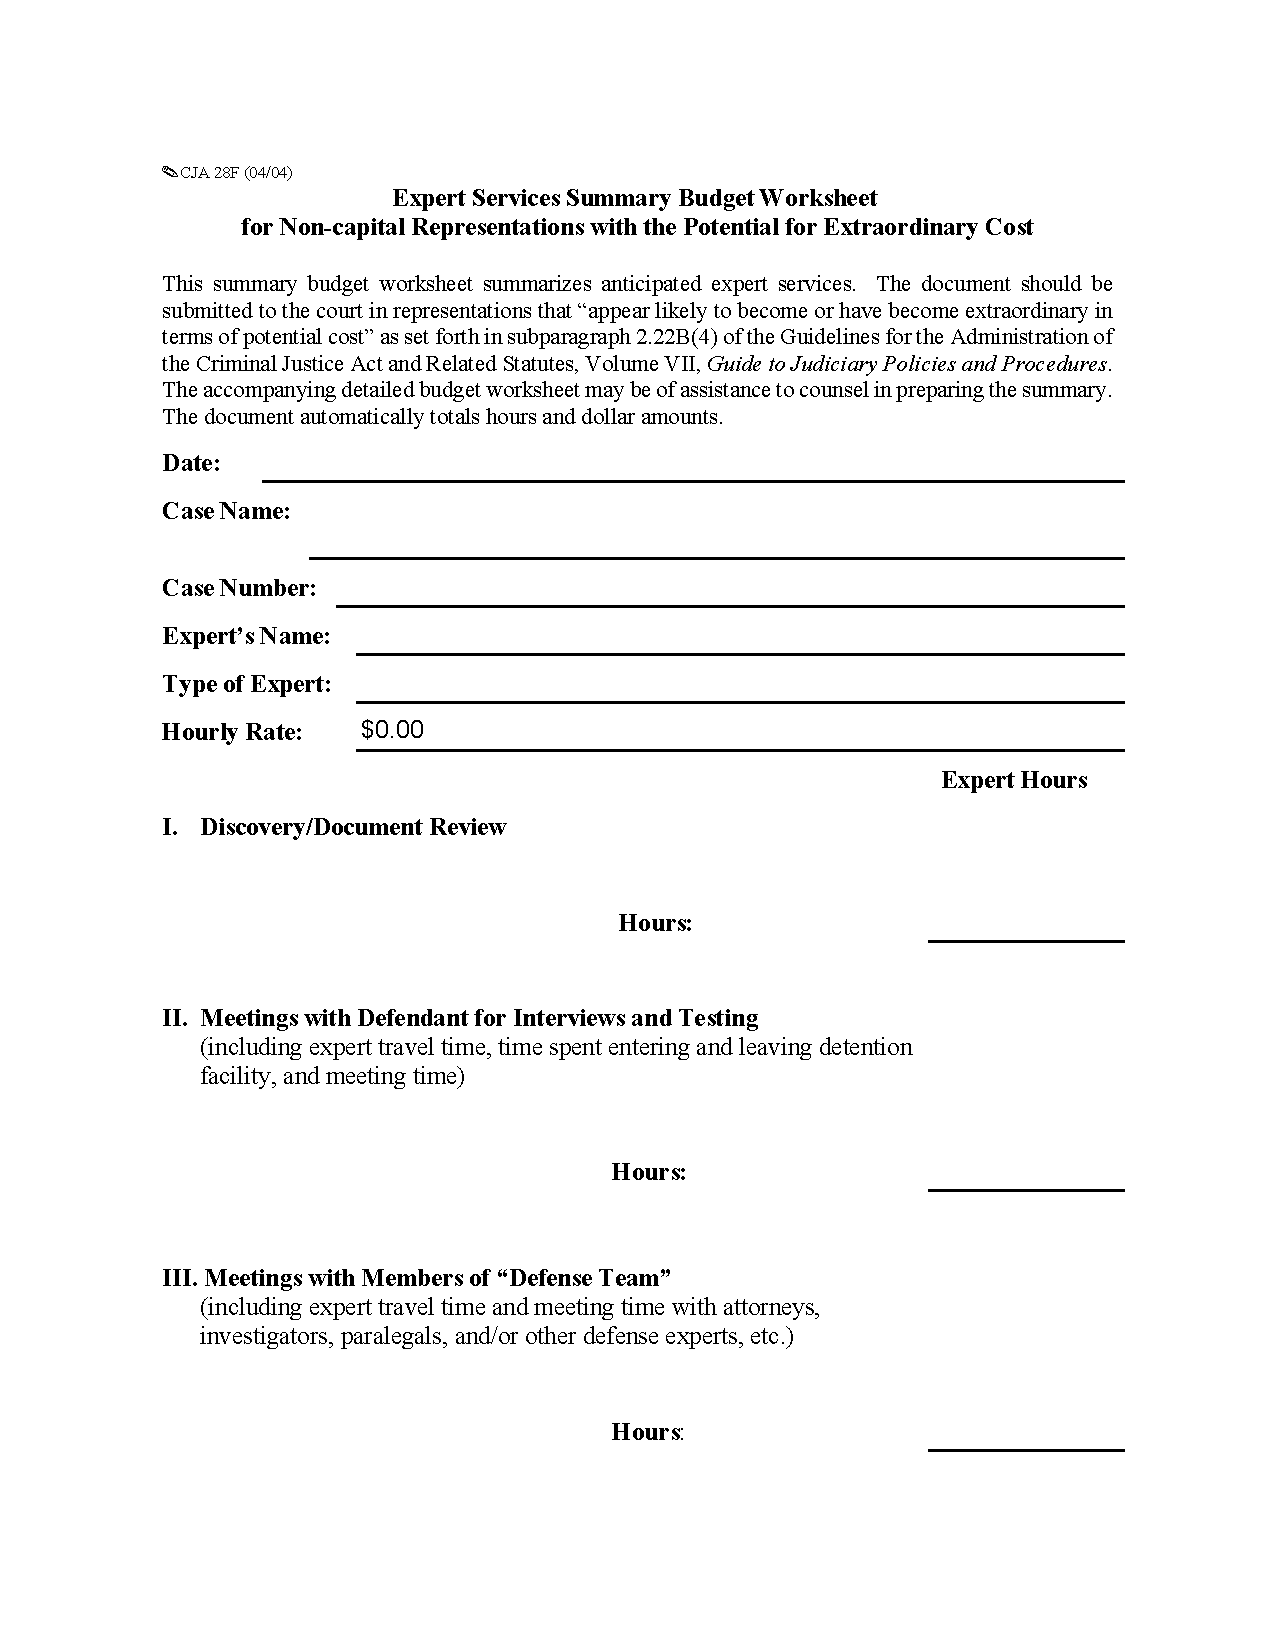 Form Cja F Expert Services Summary Budget Worksheet